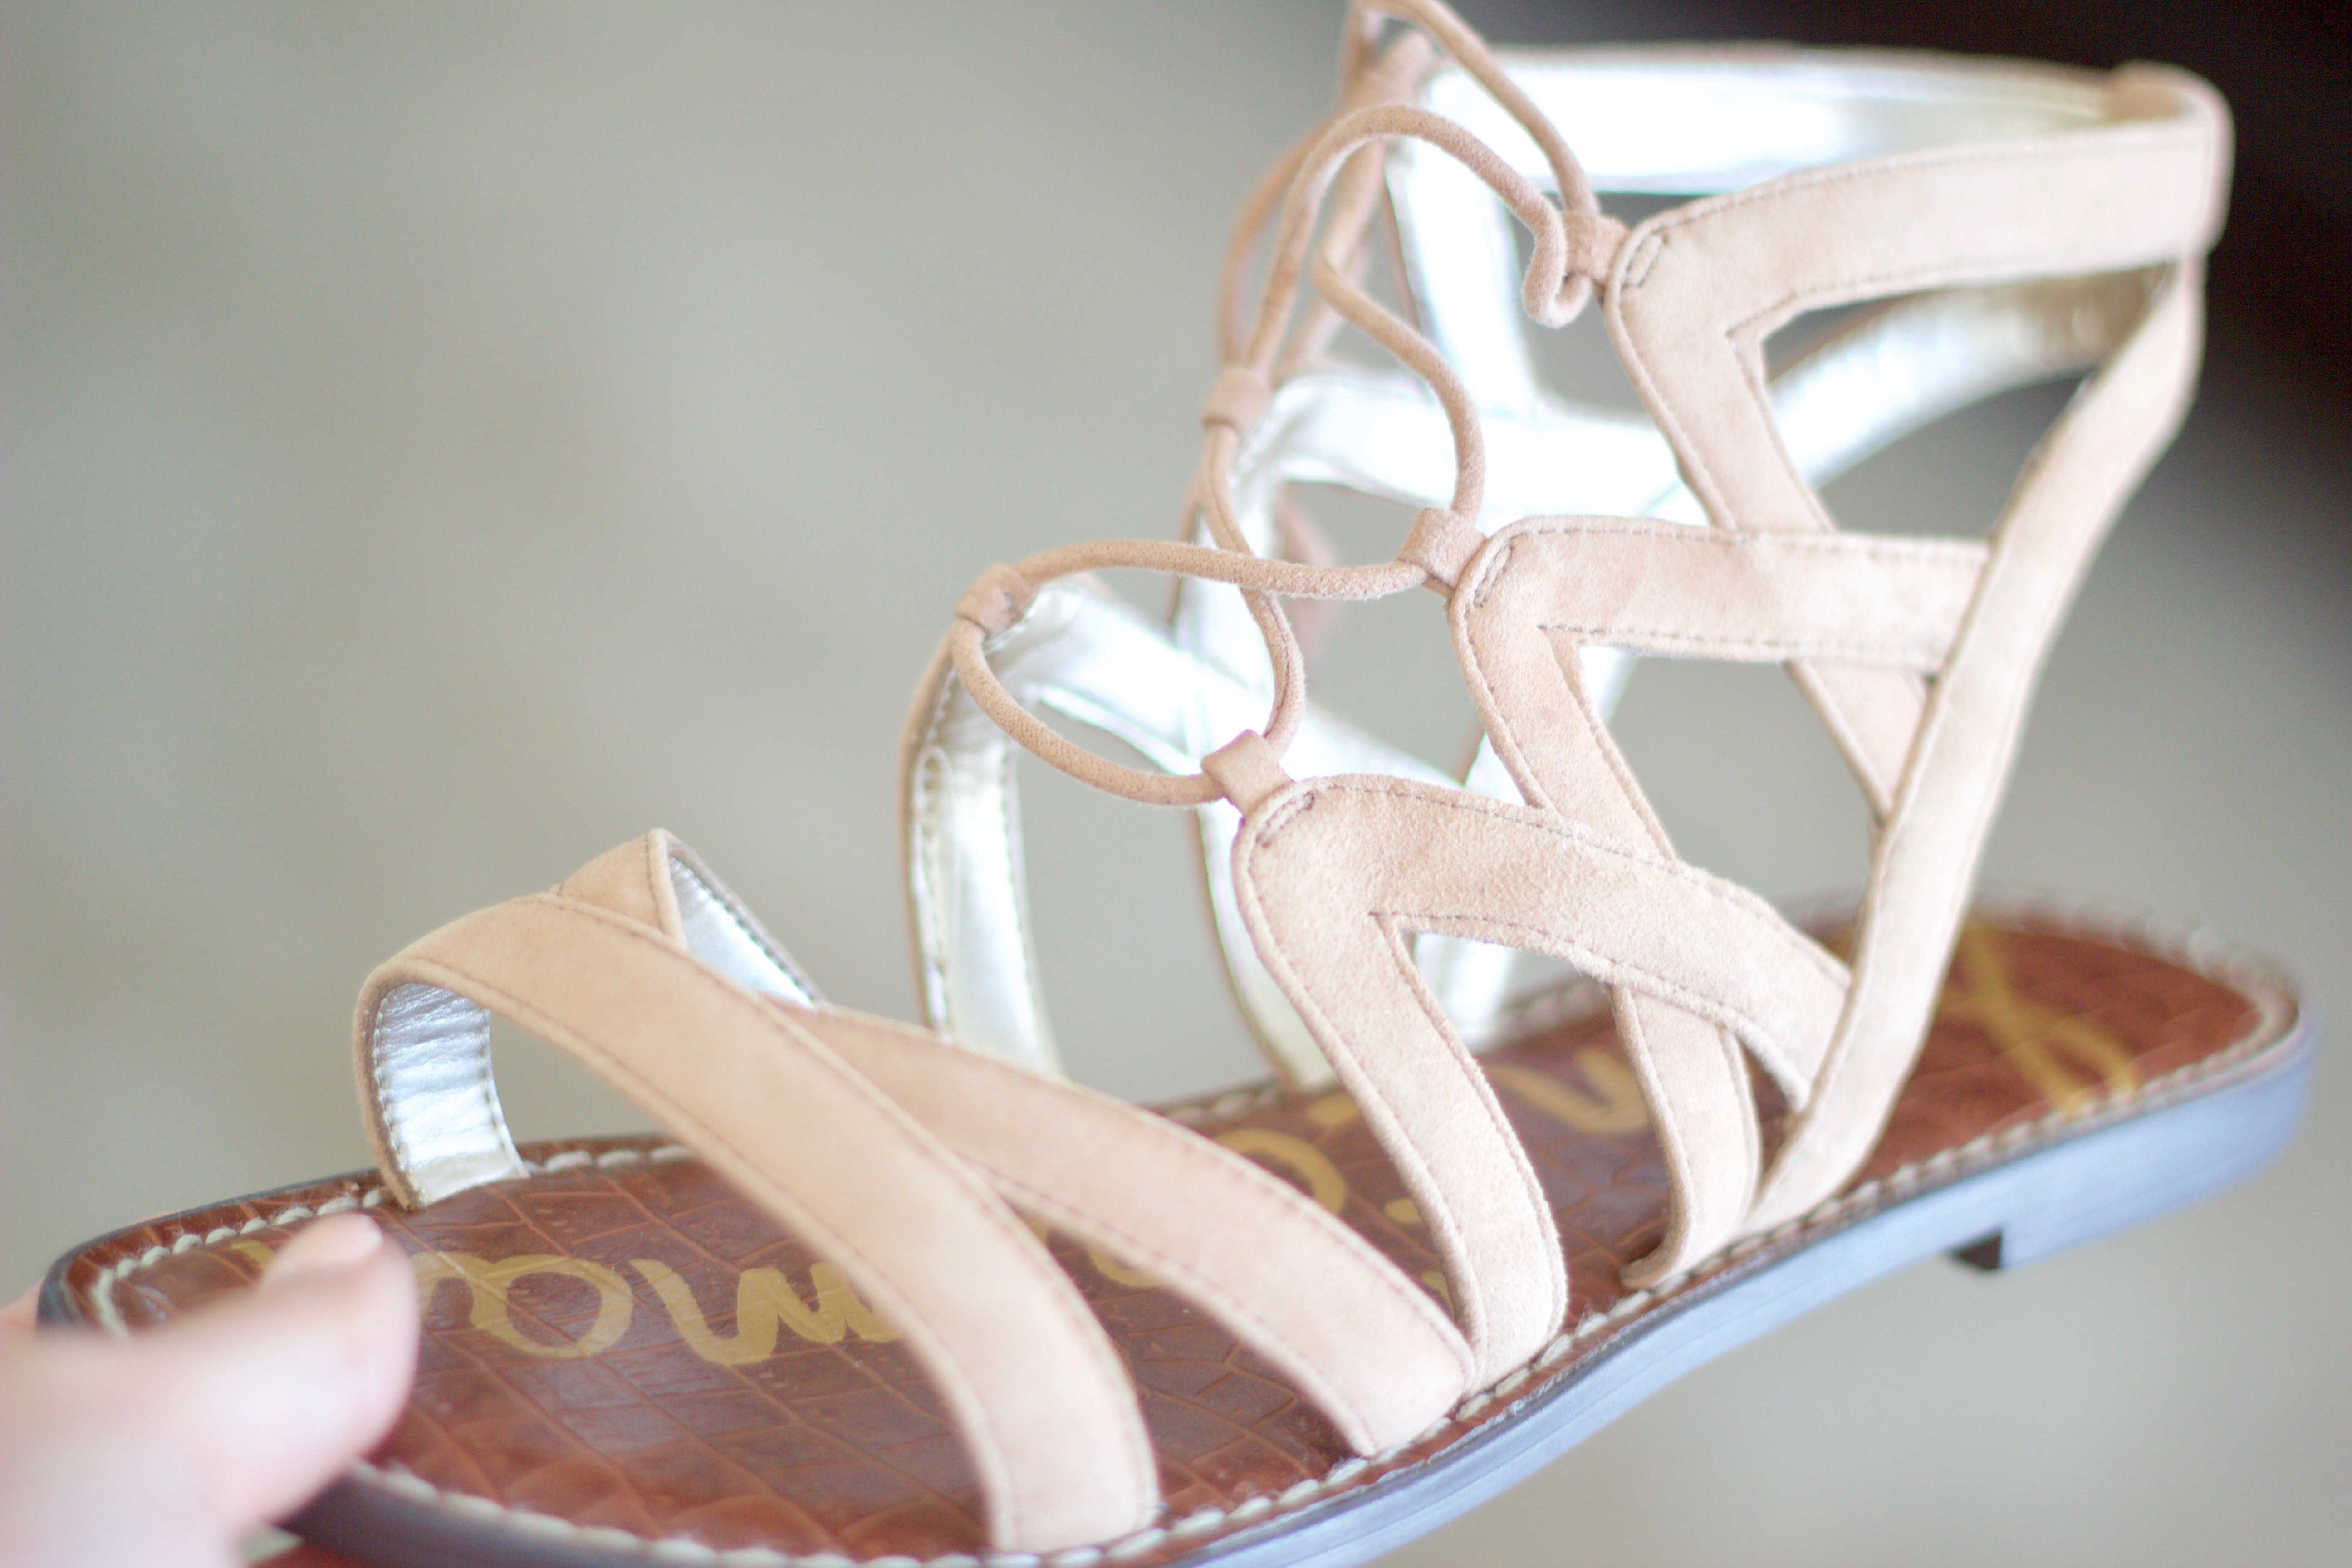 Sam edelman gemma sandals, see what else was in my May trunk from Trunk Club!